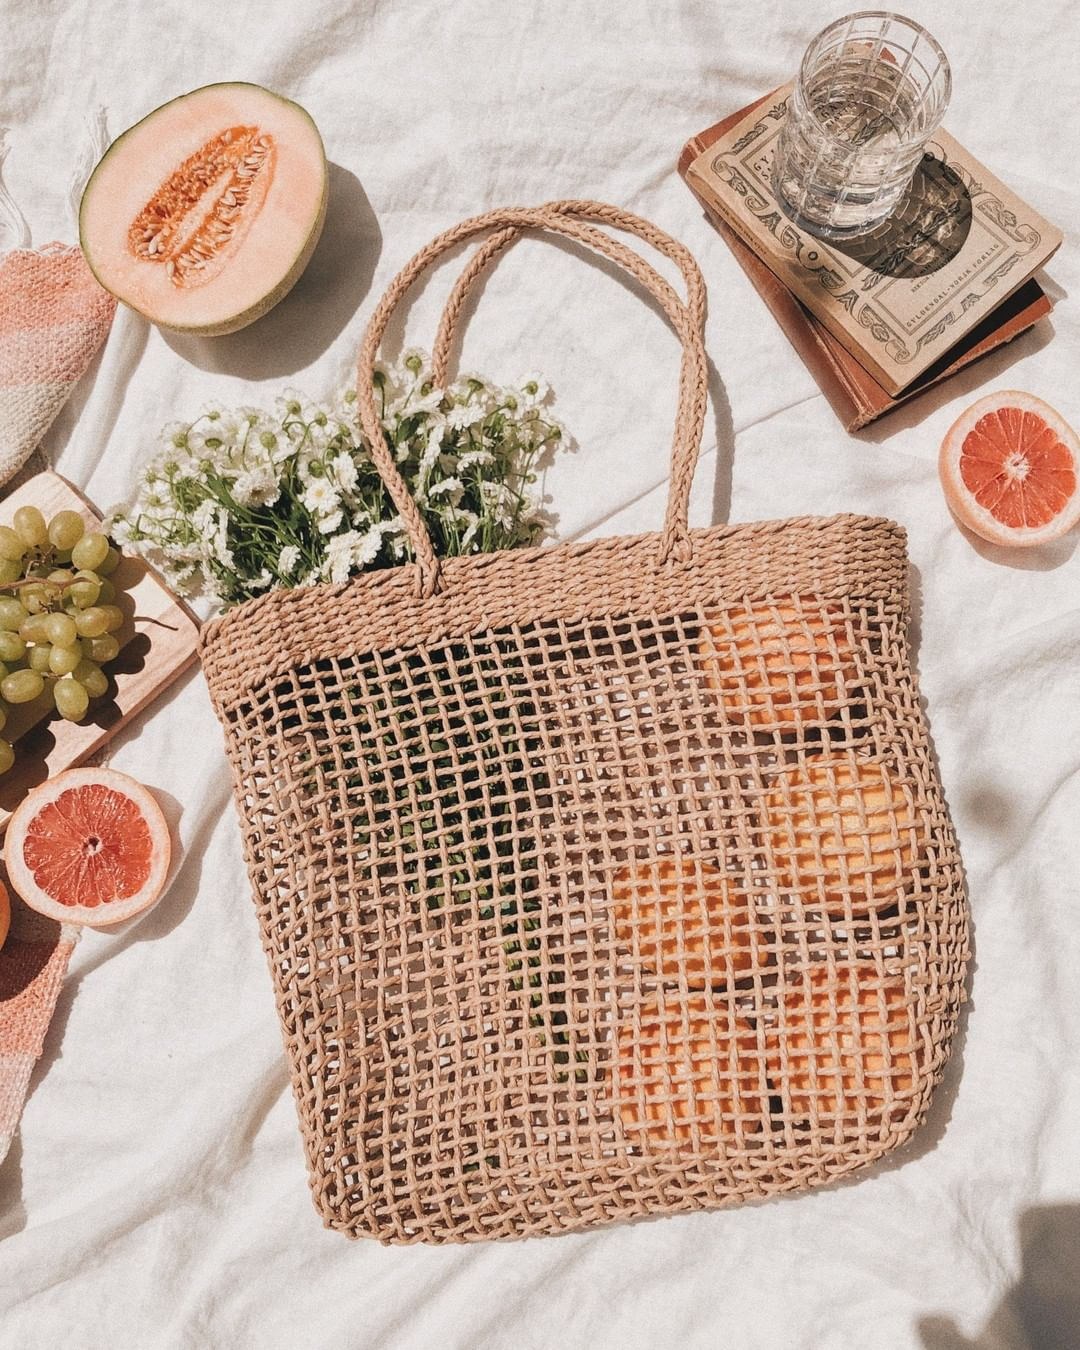 3 Summer Bag Trends That Gonna Be Anywhere in 2020